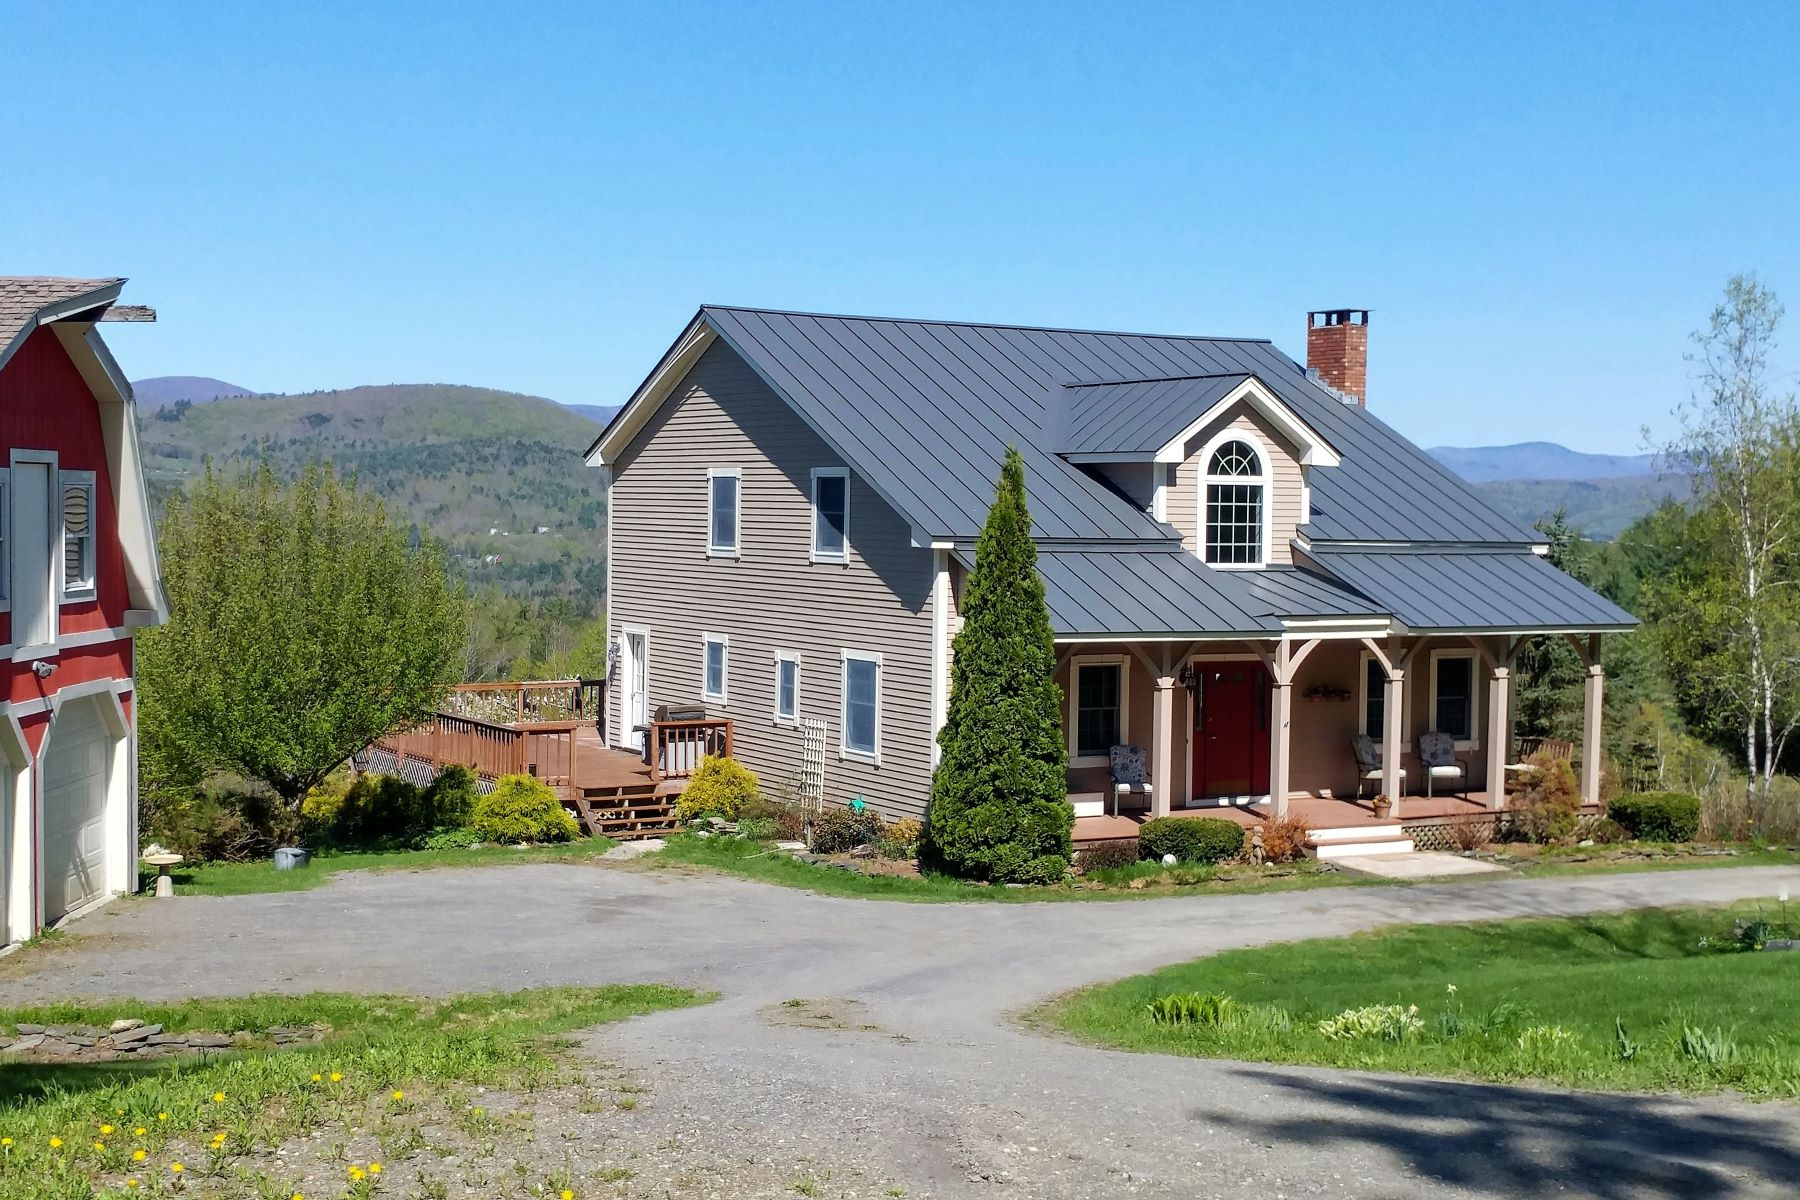 Single Family Homes for Sale at Three Bedroom Cape with View in Randolph 3562 Fish Hill Rd Randolph, Vermont 05060 United States